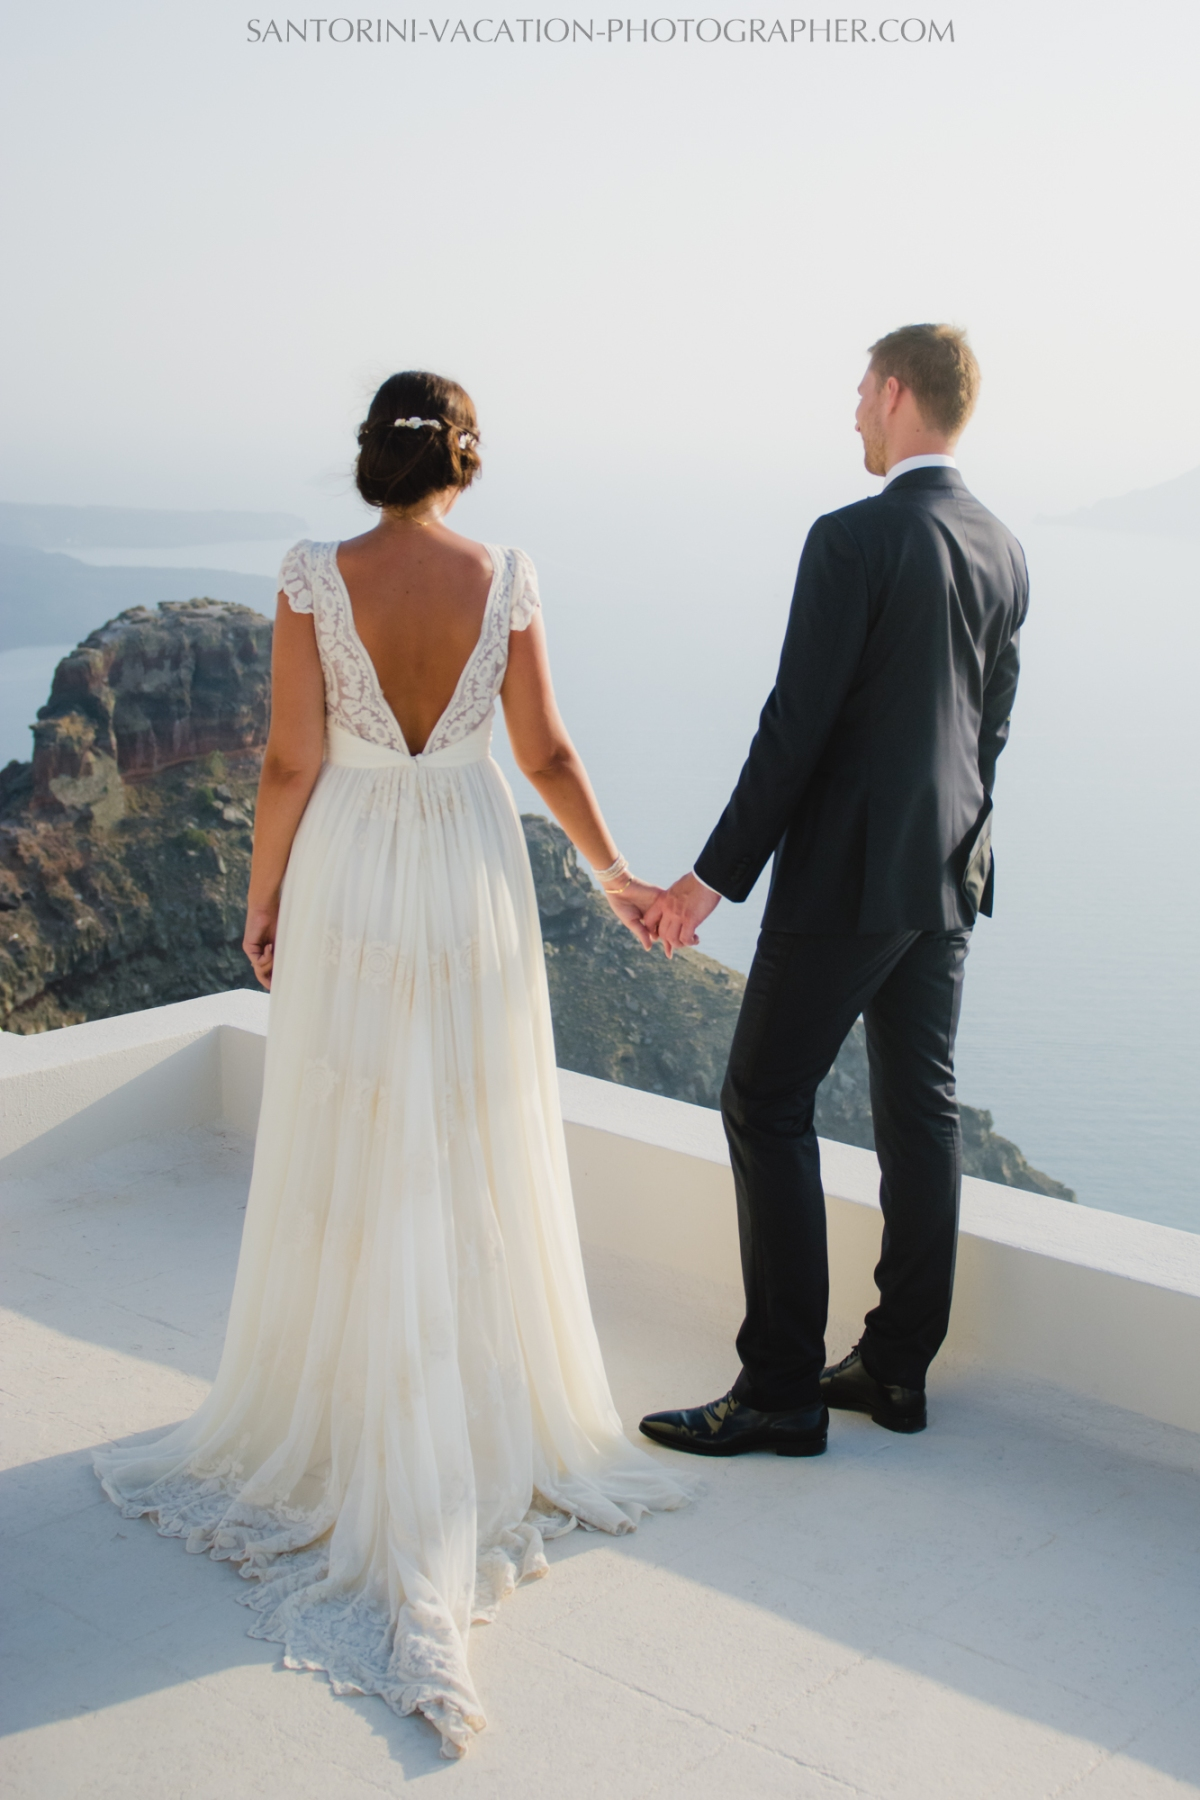 santorini-photographer-couples-photo-session-vacation-honeymoon